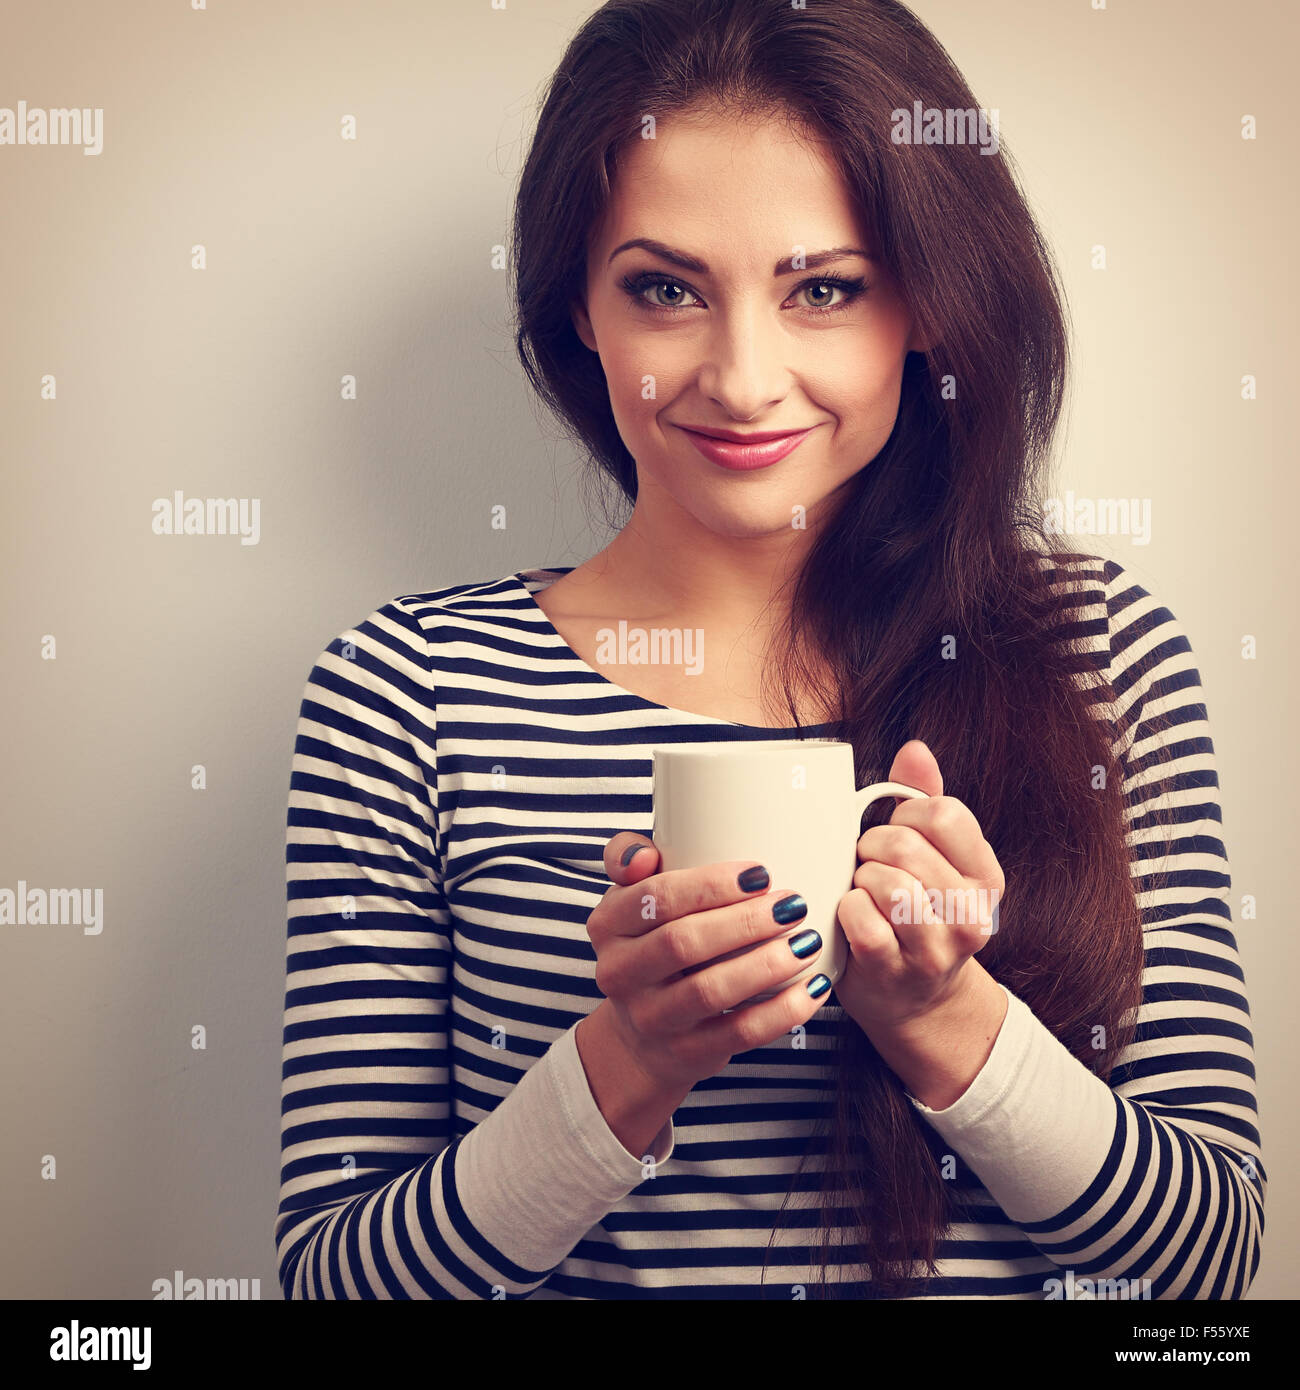 Cute young casual woman holding in hand cup of tea. Vintage toned portrait. Closeup - Stock Image